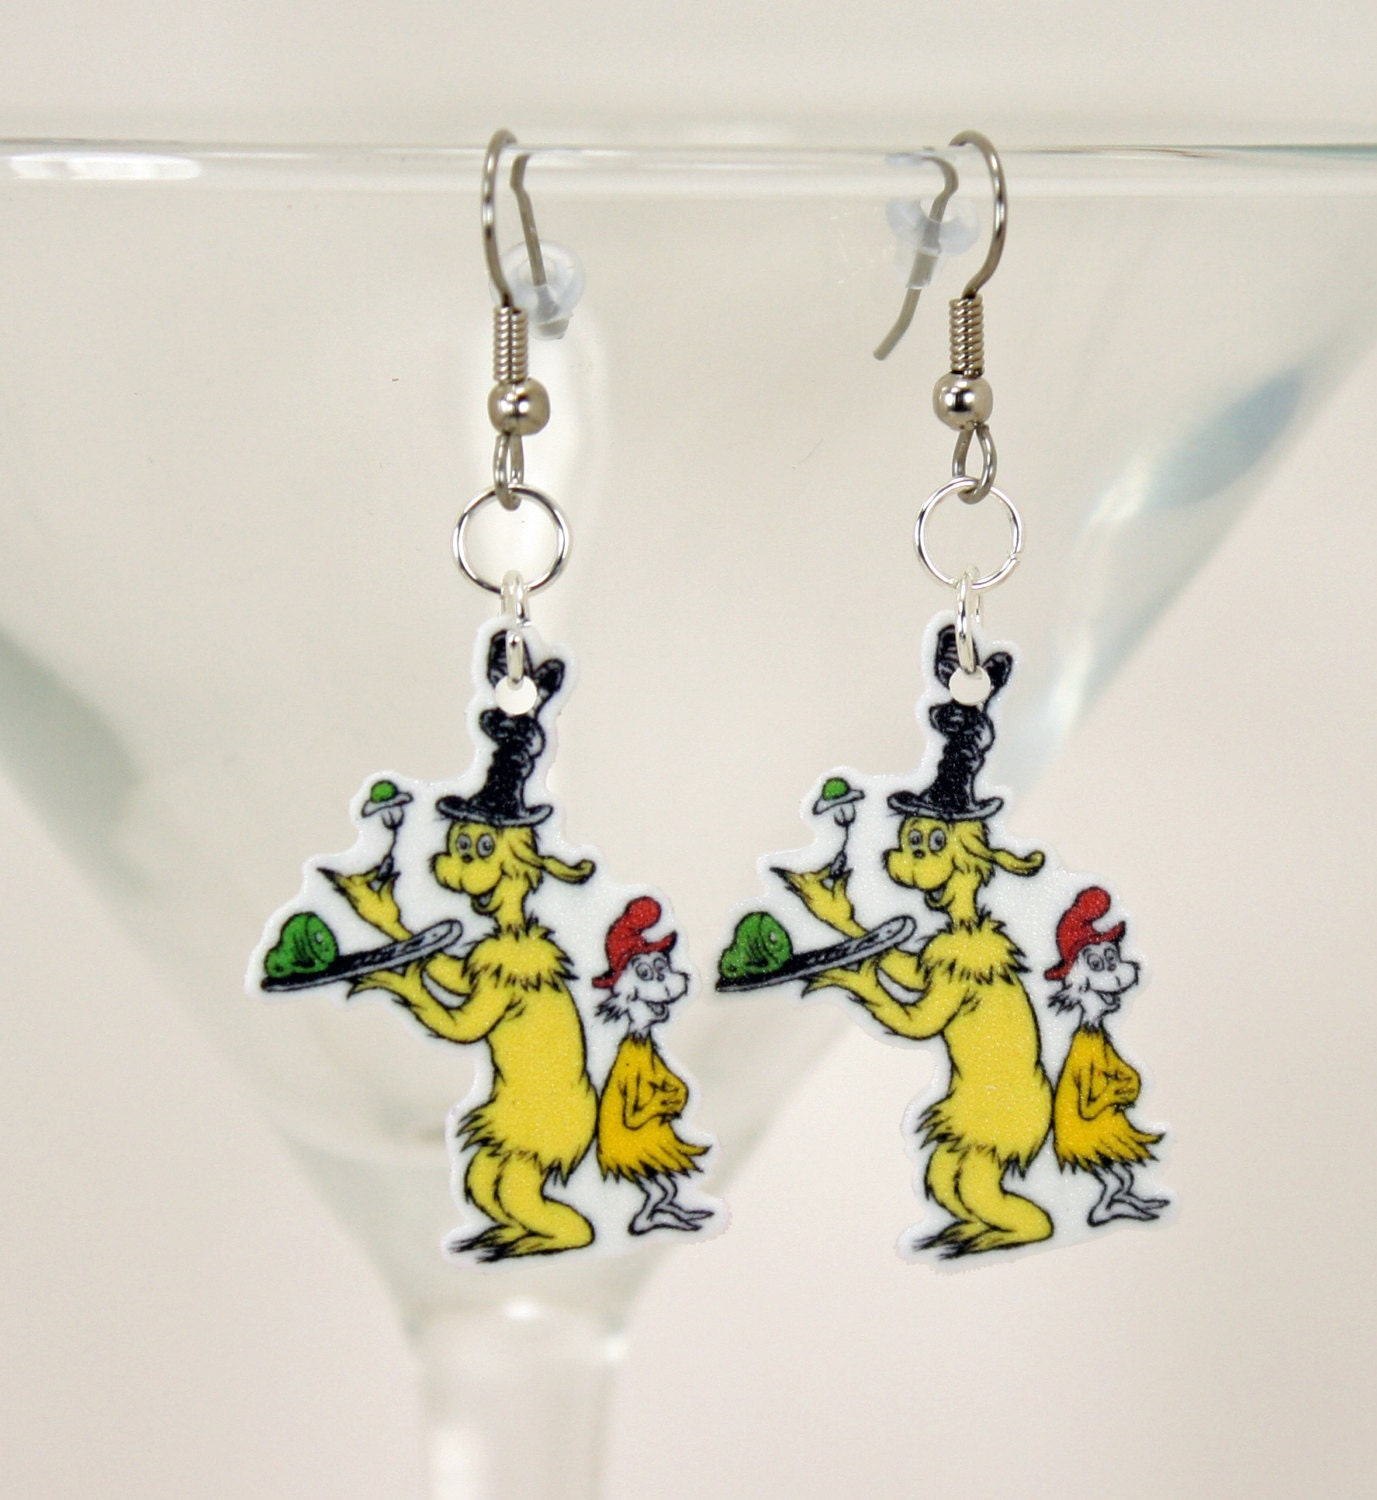 dr seuss green eggs and ham earrings sd fs by jegascreations